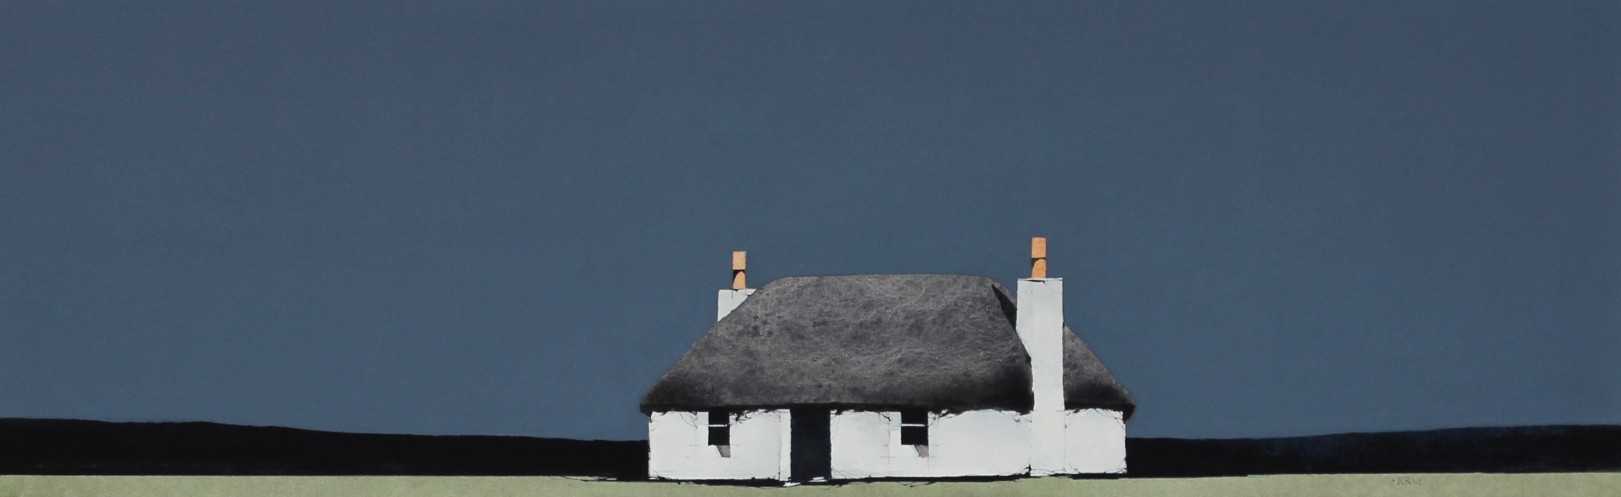 Ron Lawson_EAS206_Island Blackhouse_5x16